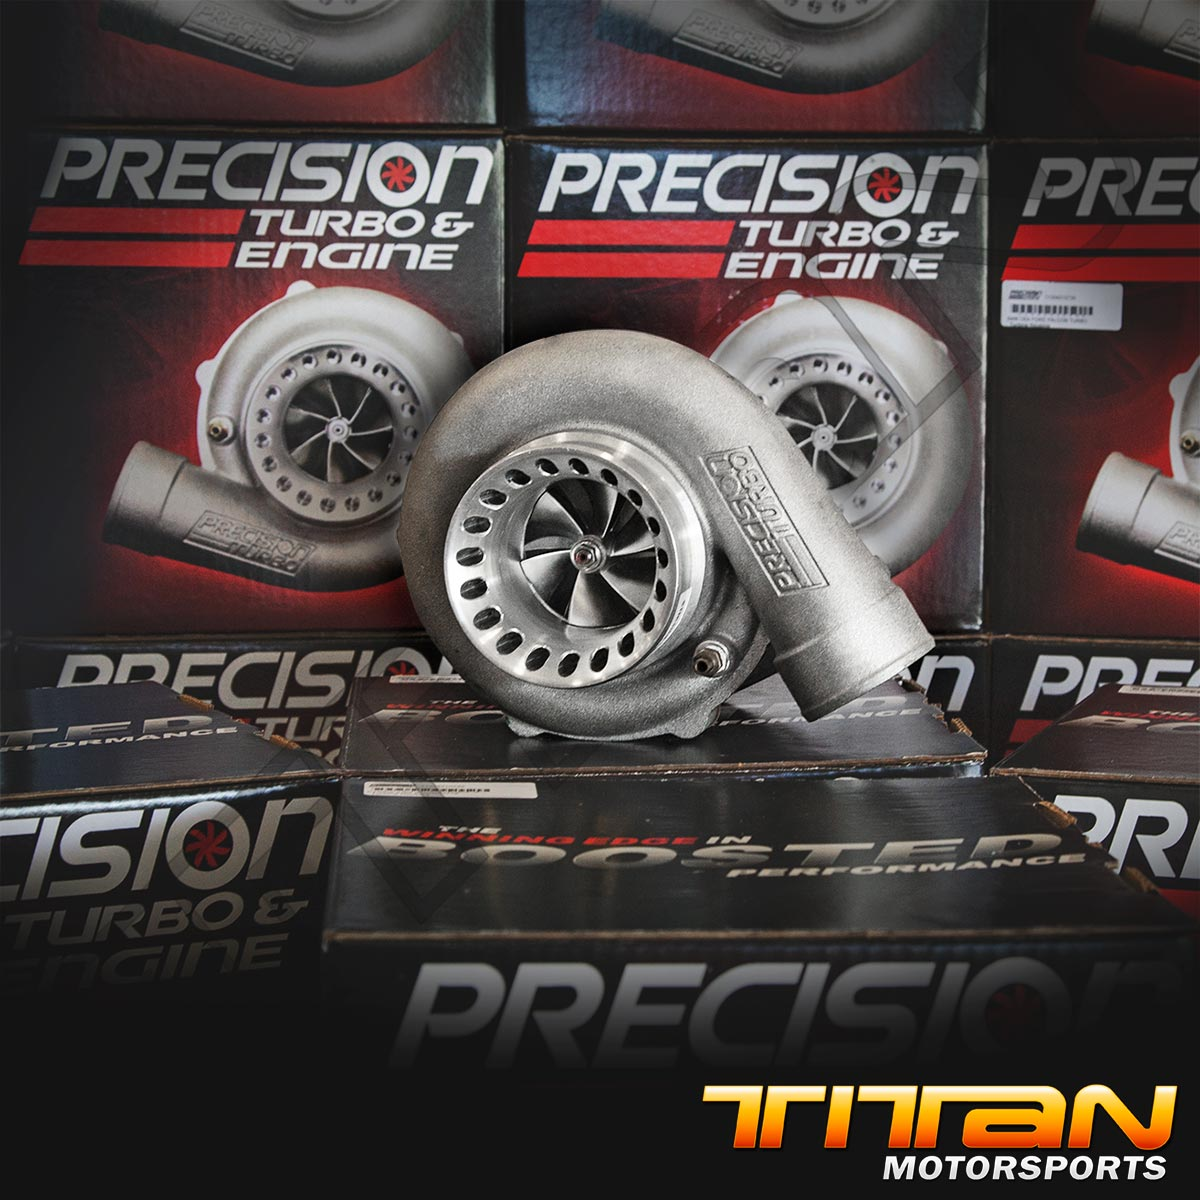 Precision 6266 Turbo Click On Make An: Precision Turbo 6266 Journal Bearing T3 .82 A/R V-band Non